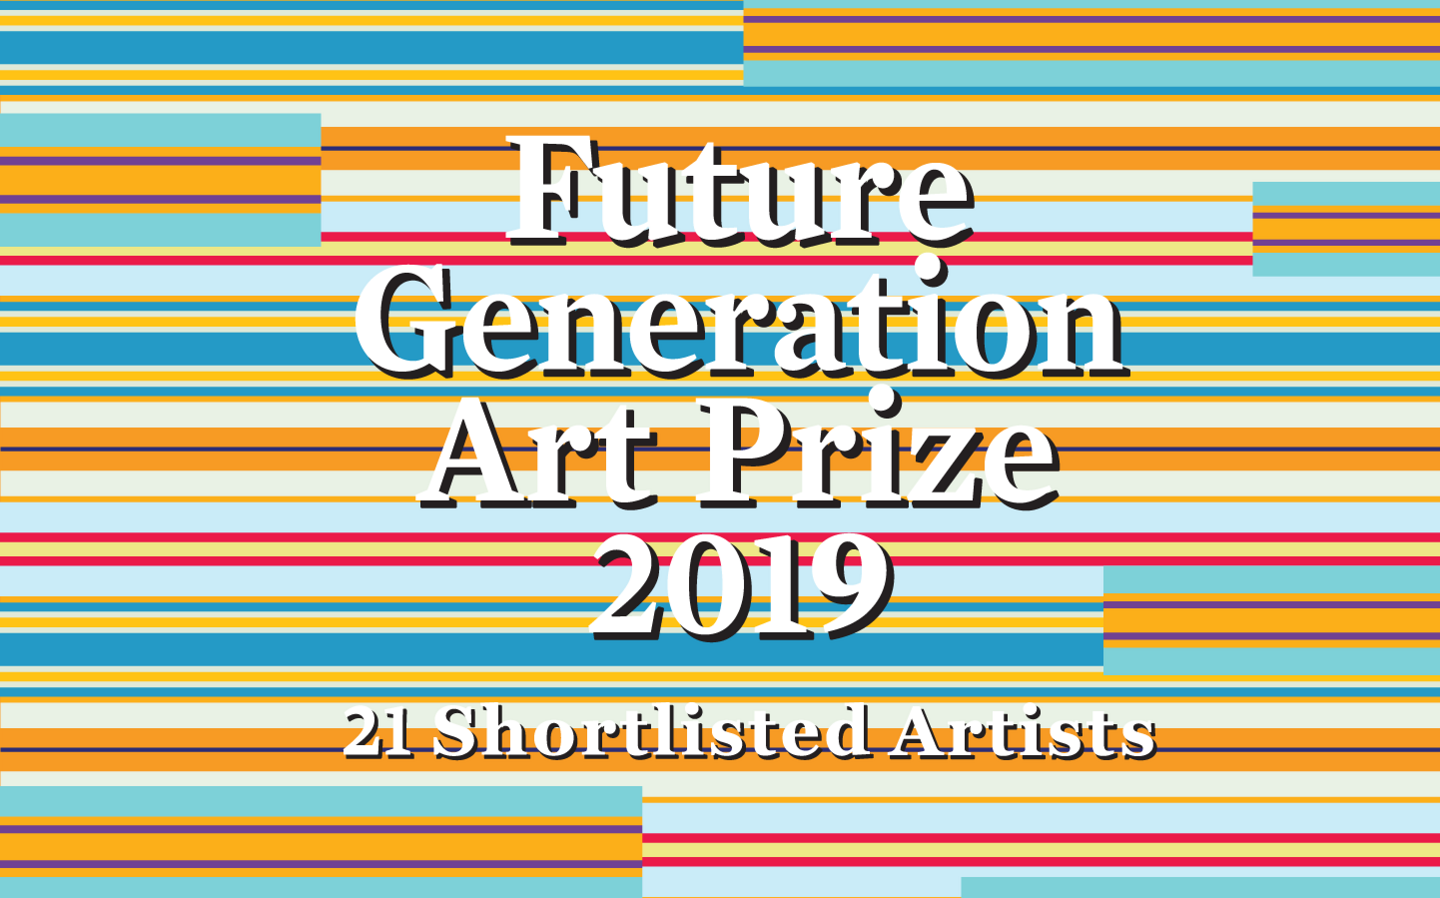 Exhibition of 21 shortlisted artists for the Future Generation Art